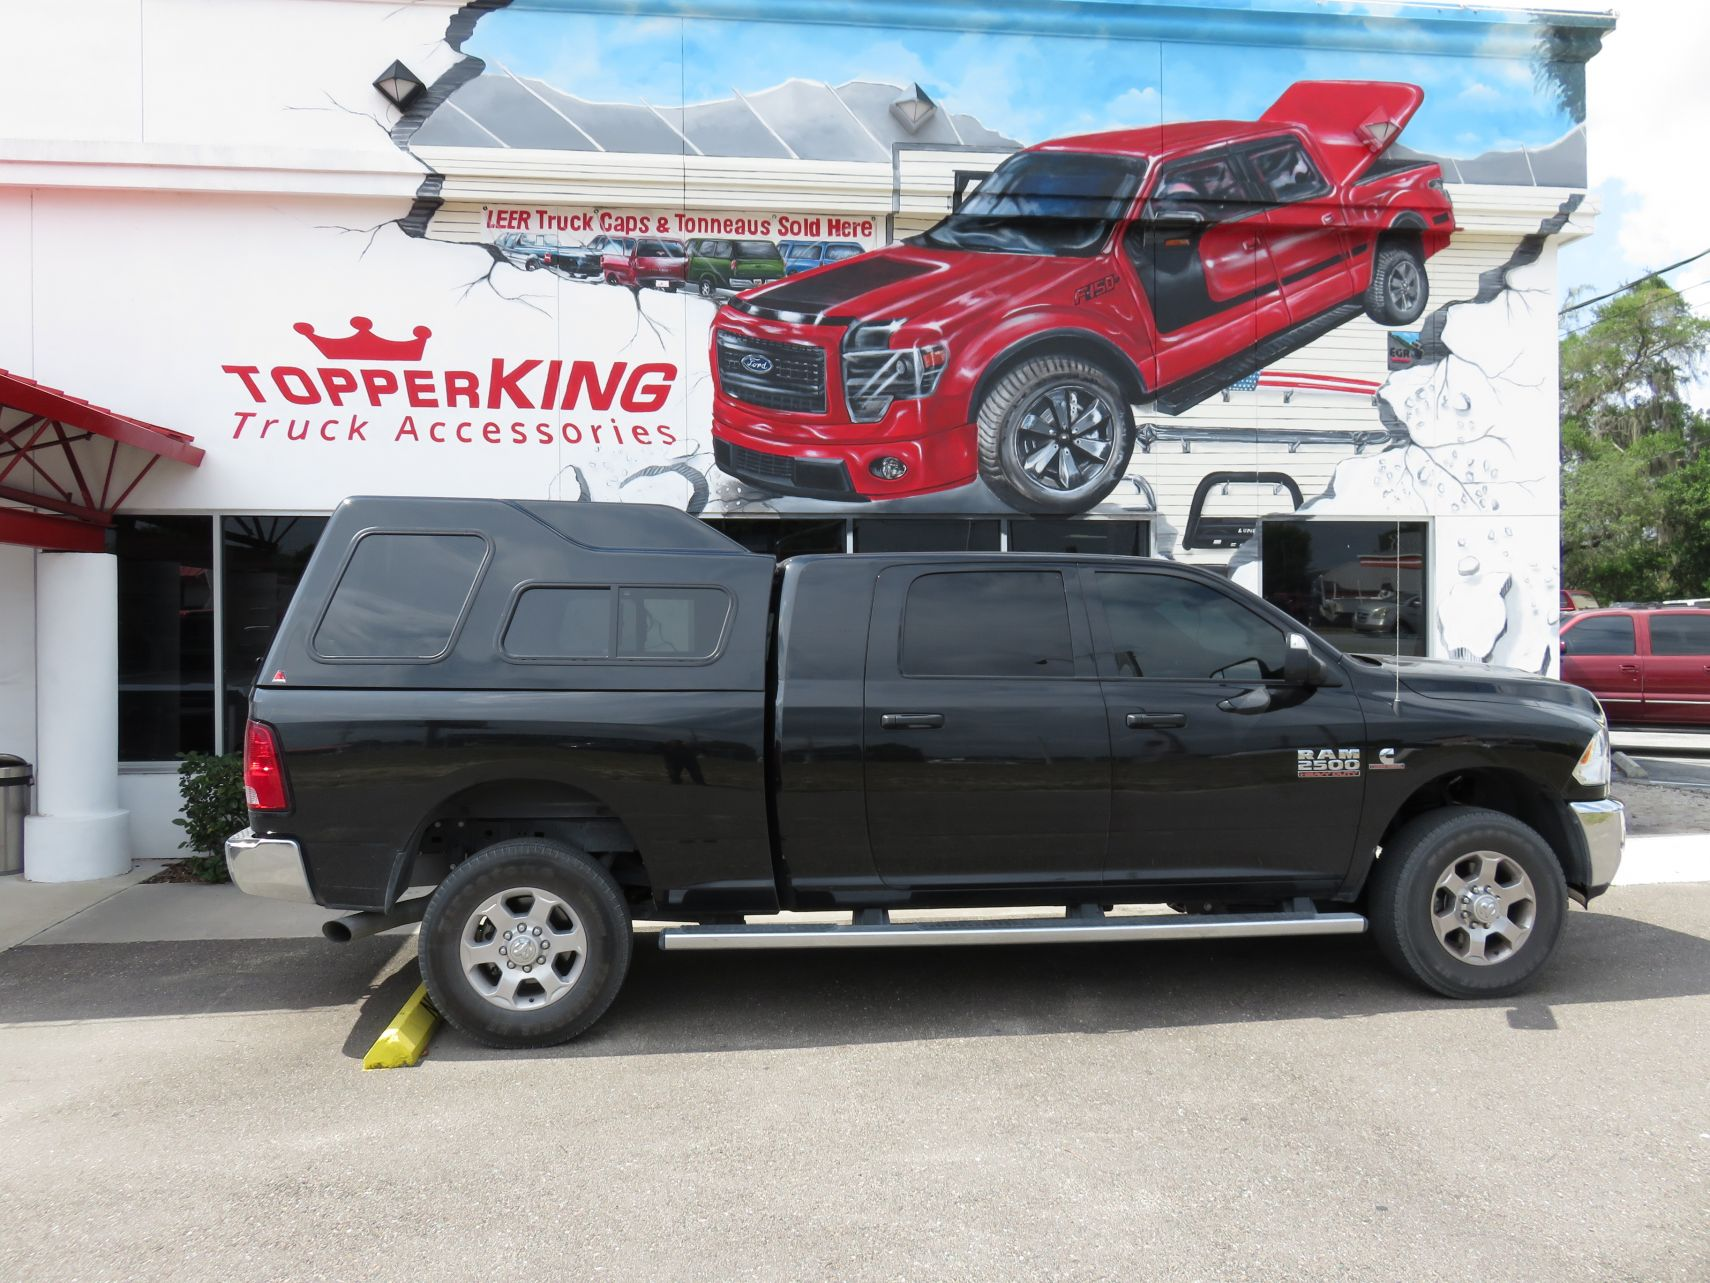 Dodge RAM 2500 LEER 122 fiberglass topper and a custom hitch by TopperKING in Brandon, FL 813-689-2449 Call today to start on your truck!